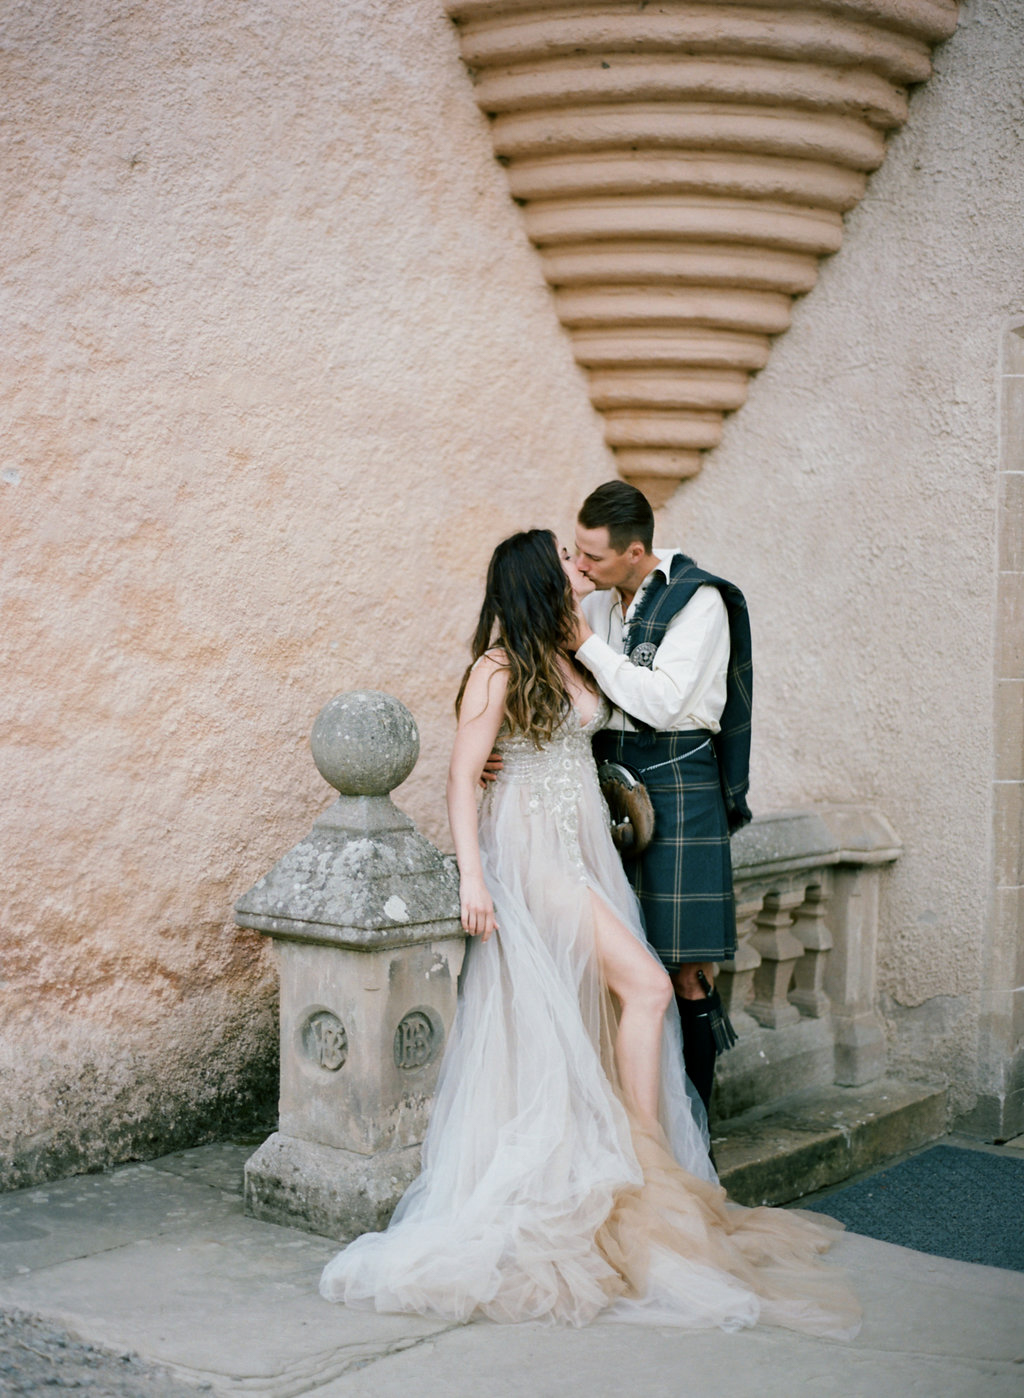 Scotland-Prewedding-highlands-castle-Engagment-Photos-Katie-Grant (35 of 139).jpg